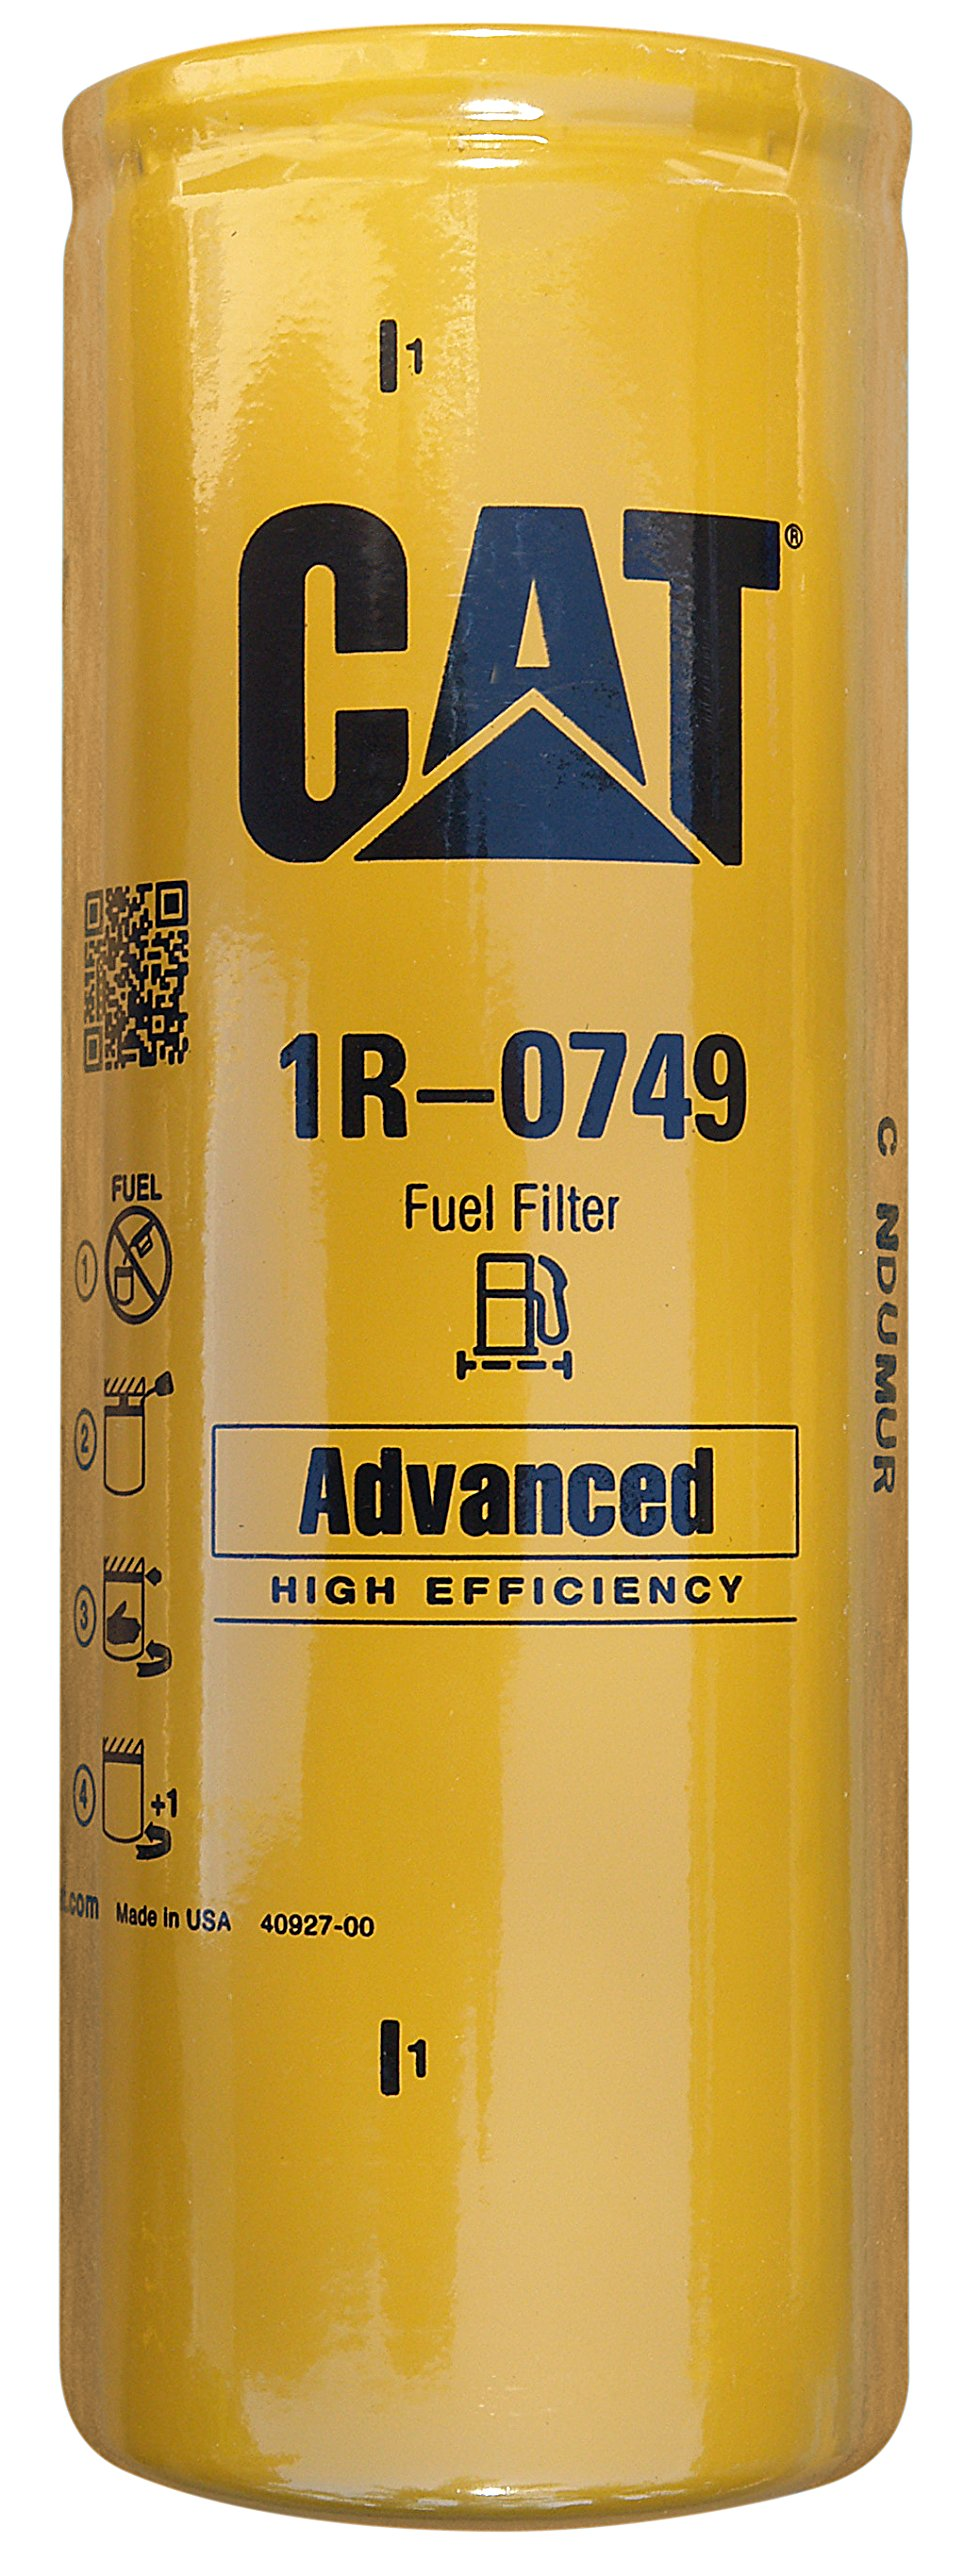 Caterpillar 1R-0749 Advanced High Efficiency Fuel Filter Multipack (Pack of 4)